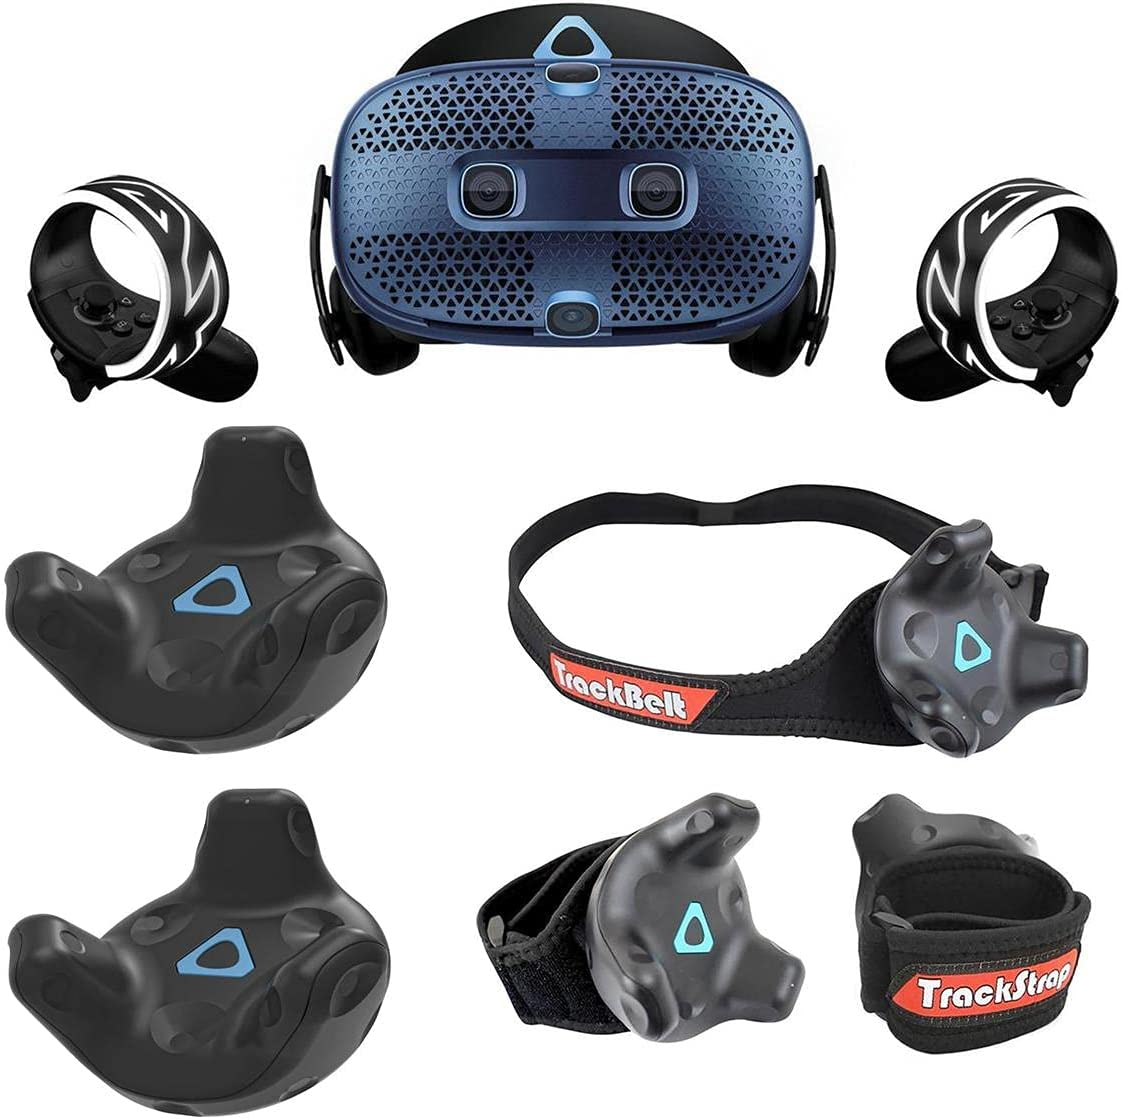 HTC Vive Cosmos PC Based VR Headset System - Bundle with 2 Pack Vive Tracker for VR Headset, Rebuff Reality TrackBelt + 2 TrackStraps Full Body Tracking VR Bundle, Black